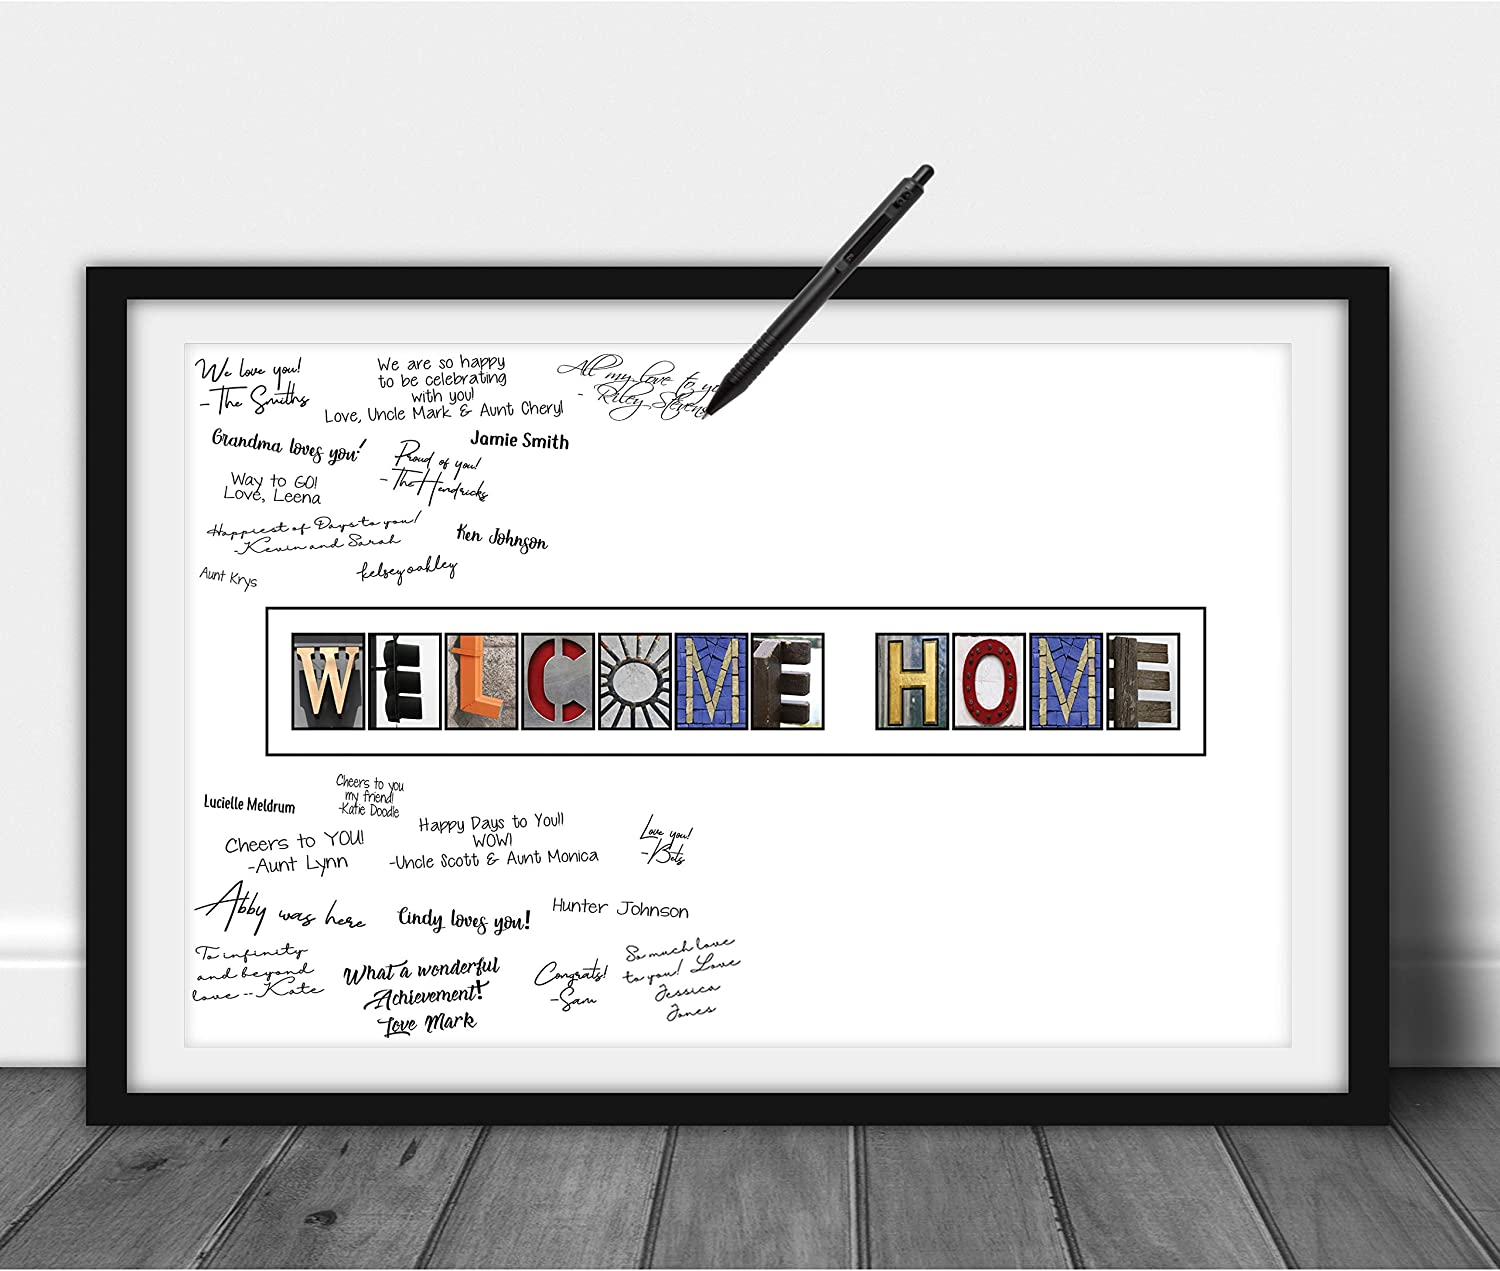 Katie Doodle Welcome Home Decorations - Creative Guest Book Alternative - Great Welcome Home Sign or Welcome Home Gifts for Military, New Home, Baby Girl or Boy - Includes 11x17 Inch Poster [Unframed]